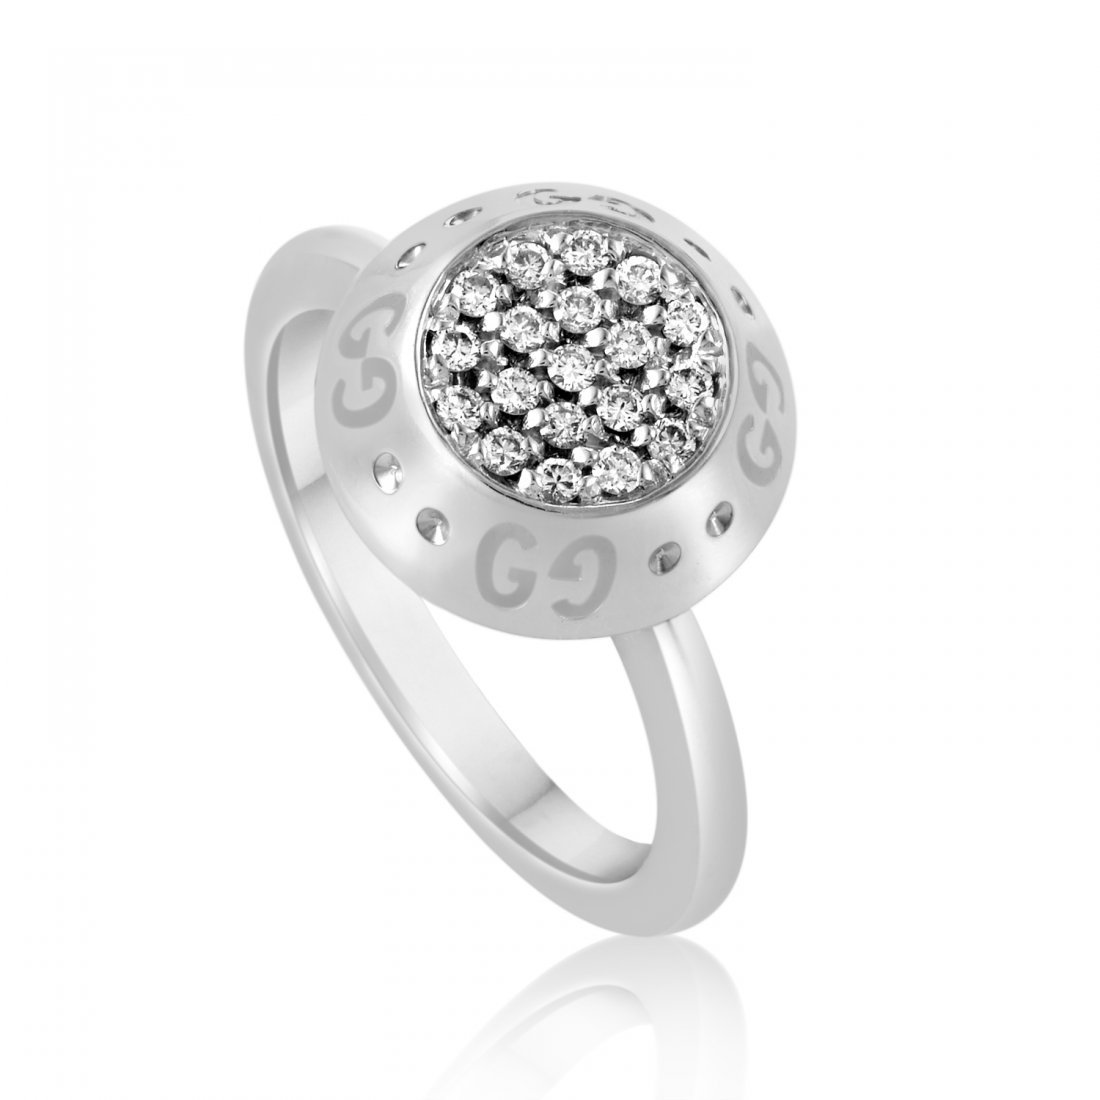 Gucci 18K White Gold Diamond Pave Ring  Exceptionally